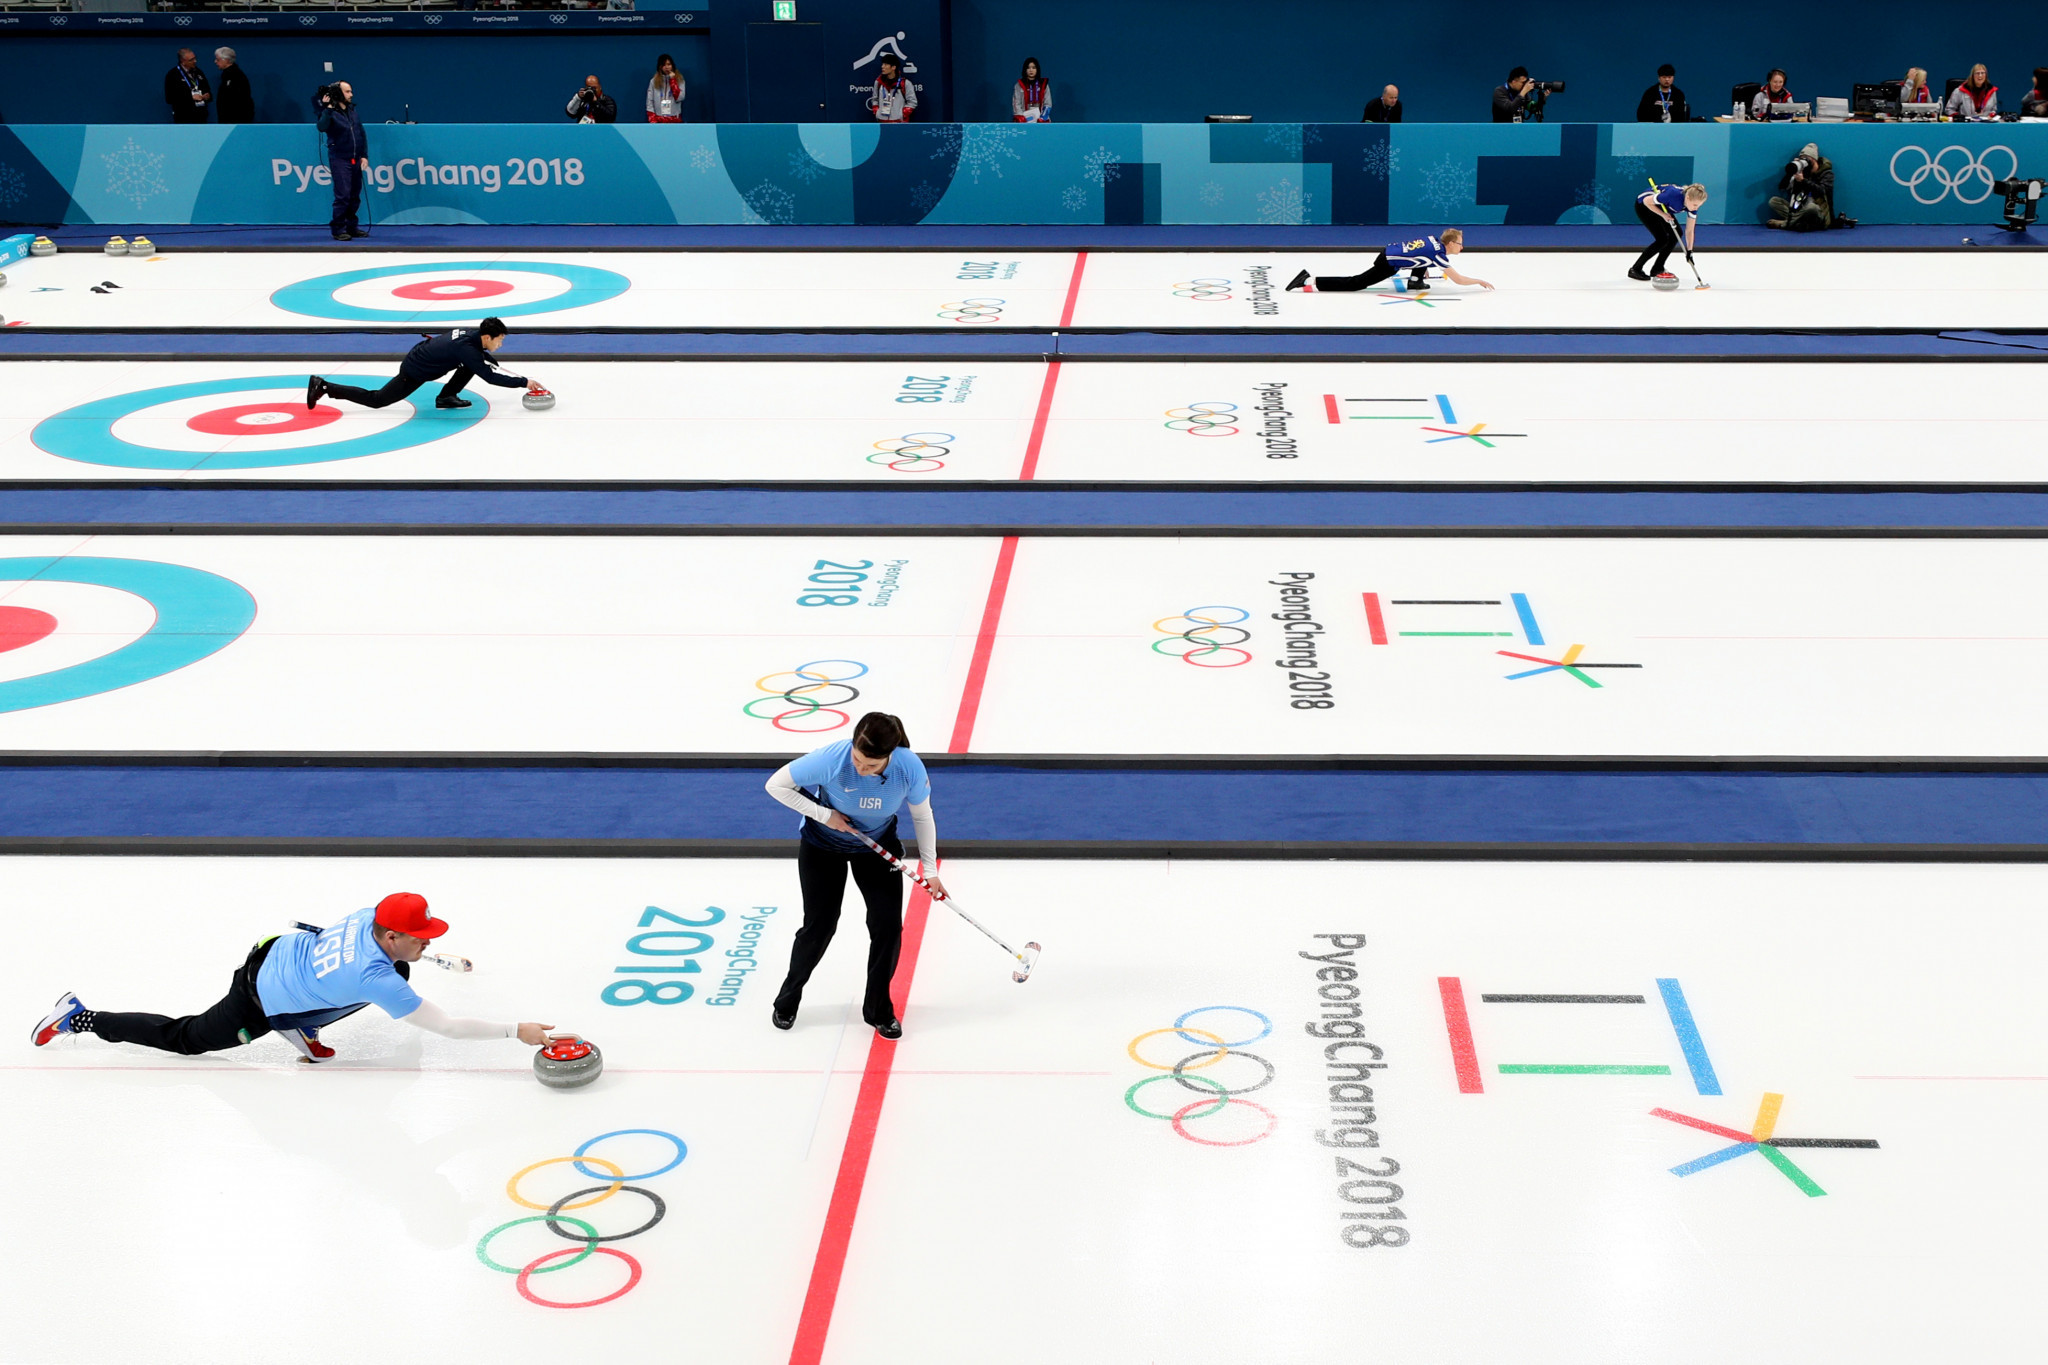 The World Curling Federation is the latest International Federation to partner with the World Academy of Sport to provide educational resources ©Getty Images